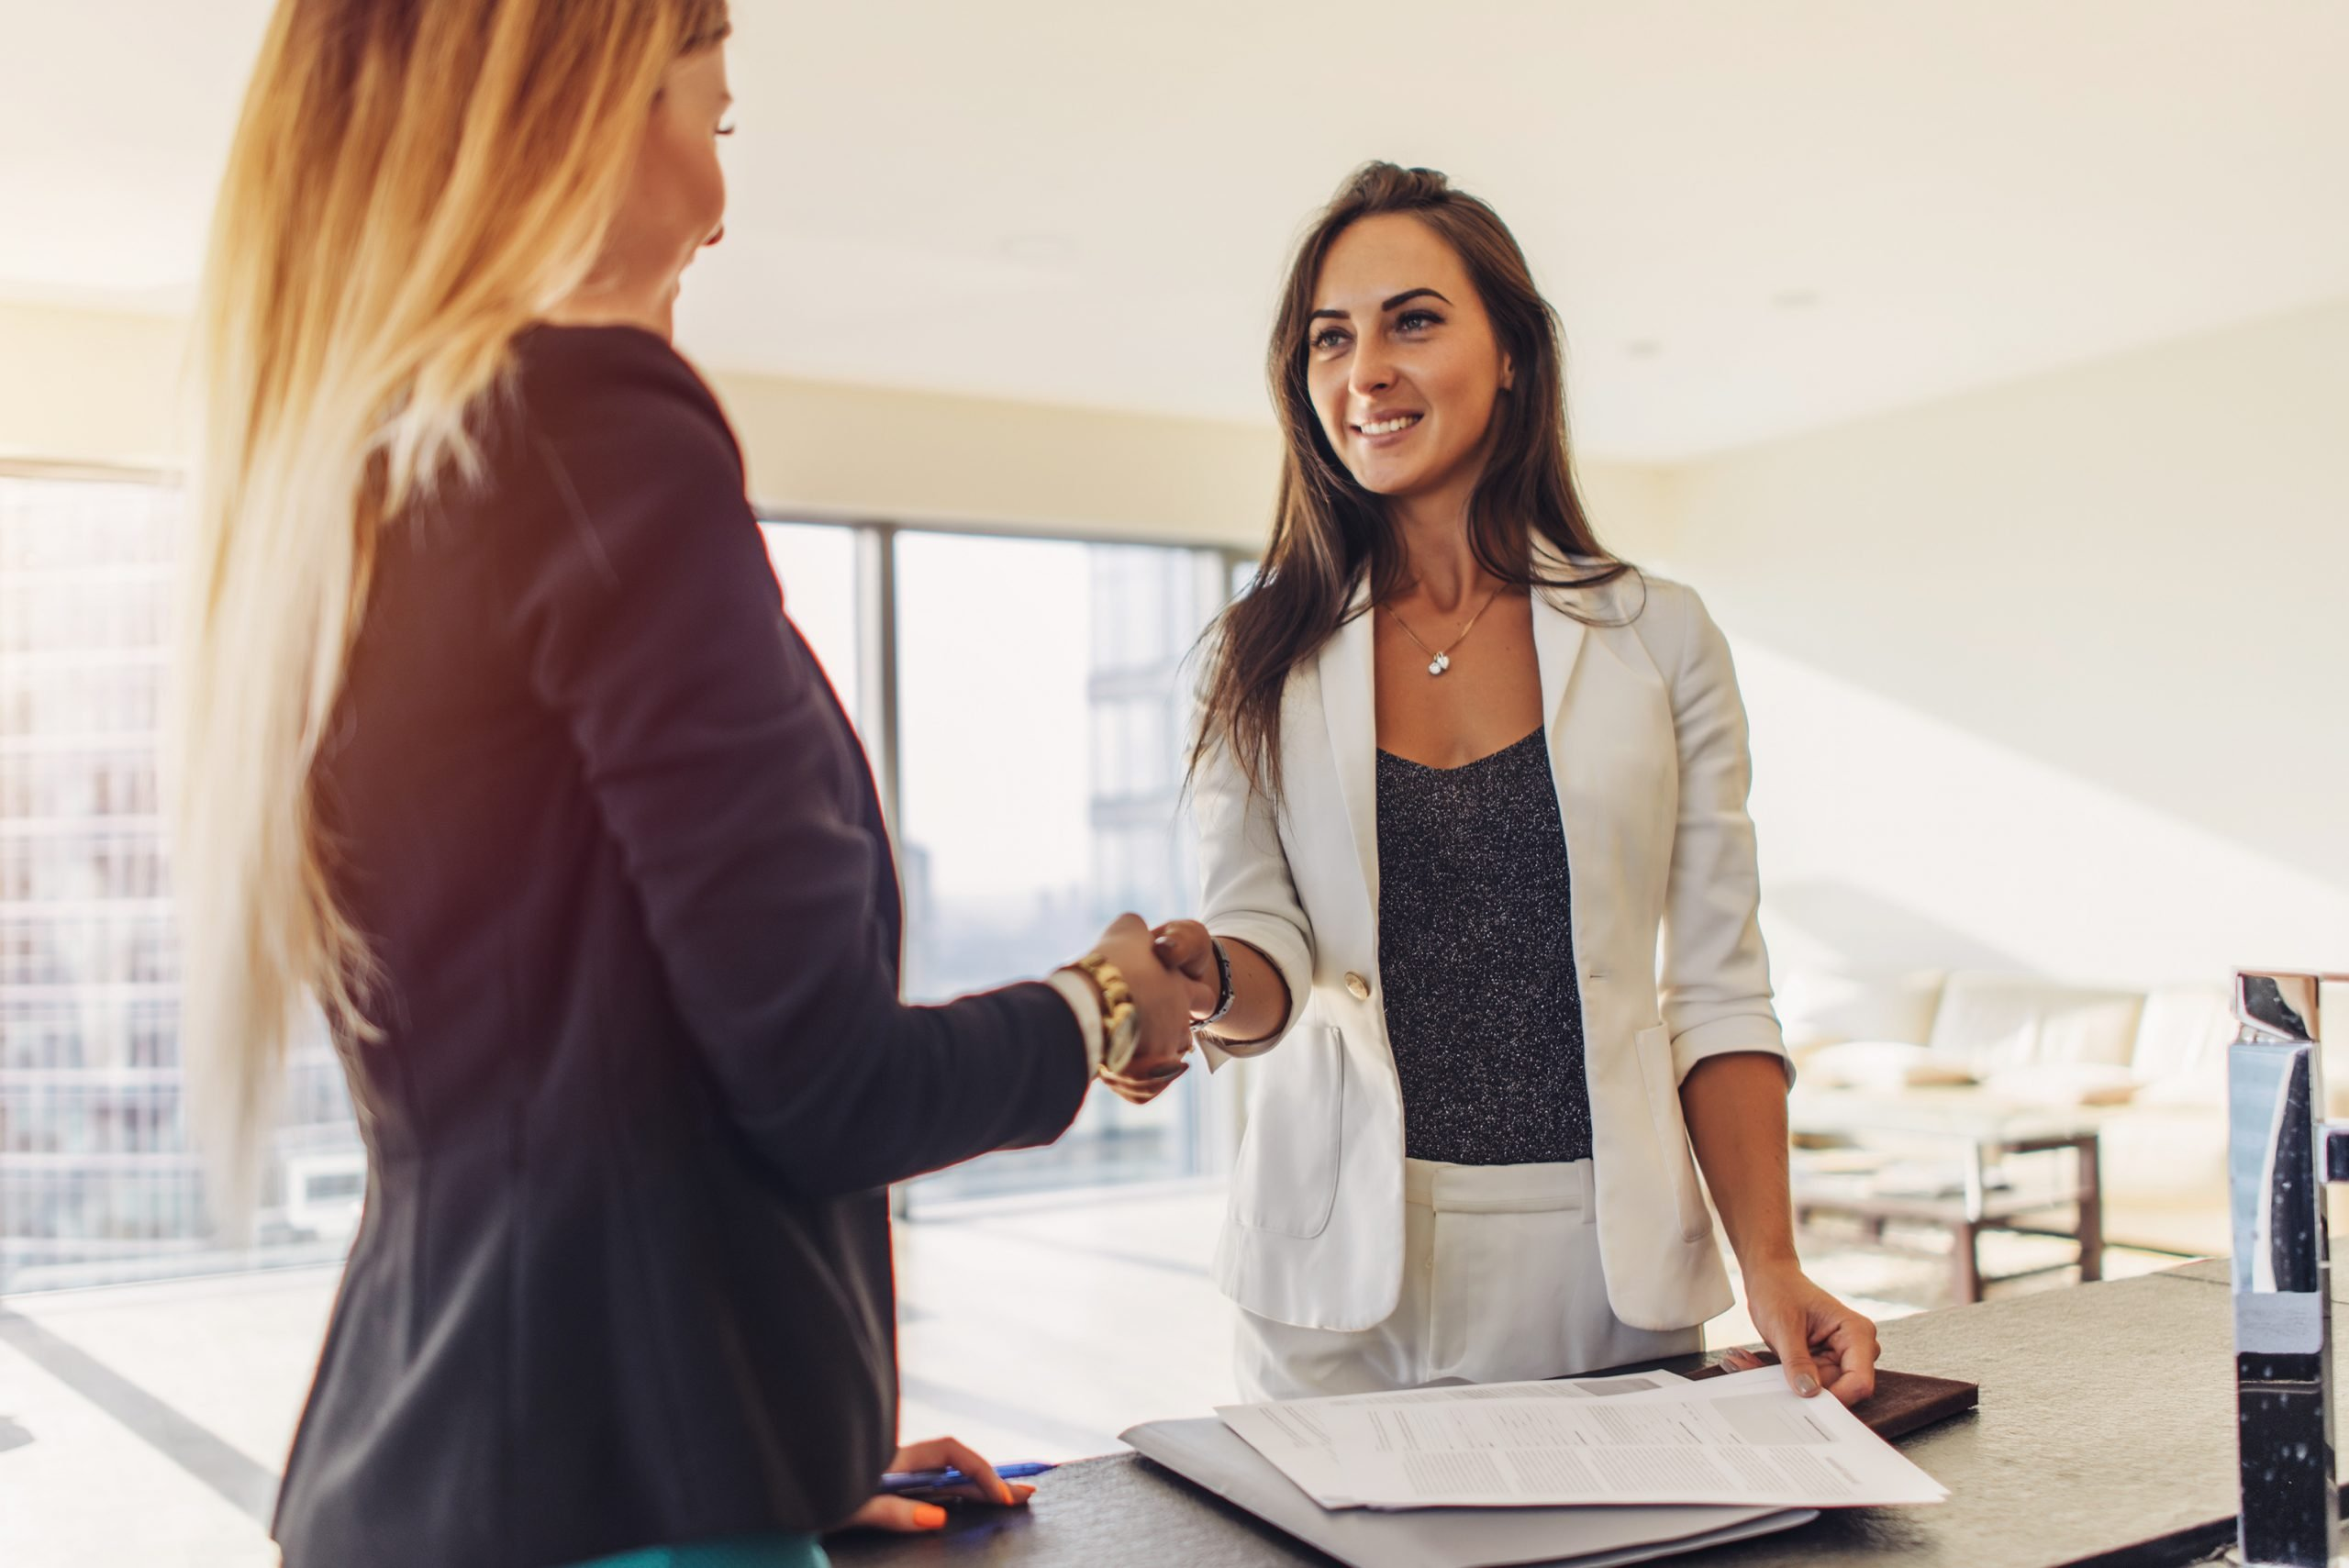 Female customer shaking hands with real estate agent agreeing to sign a contract standing in new modern studio apartment.